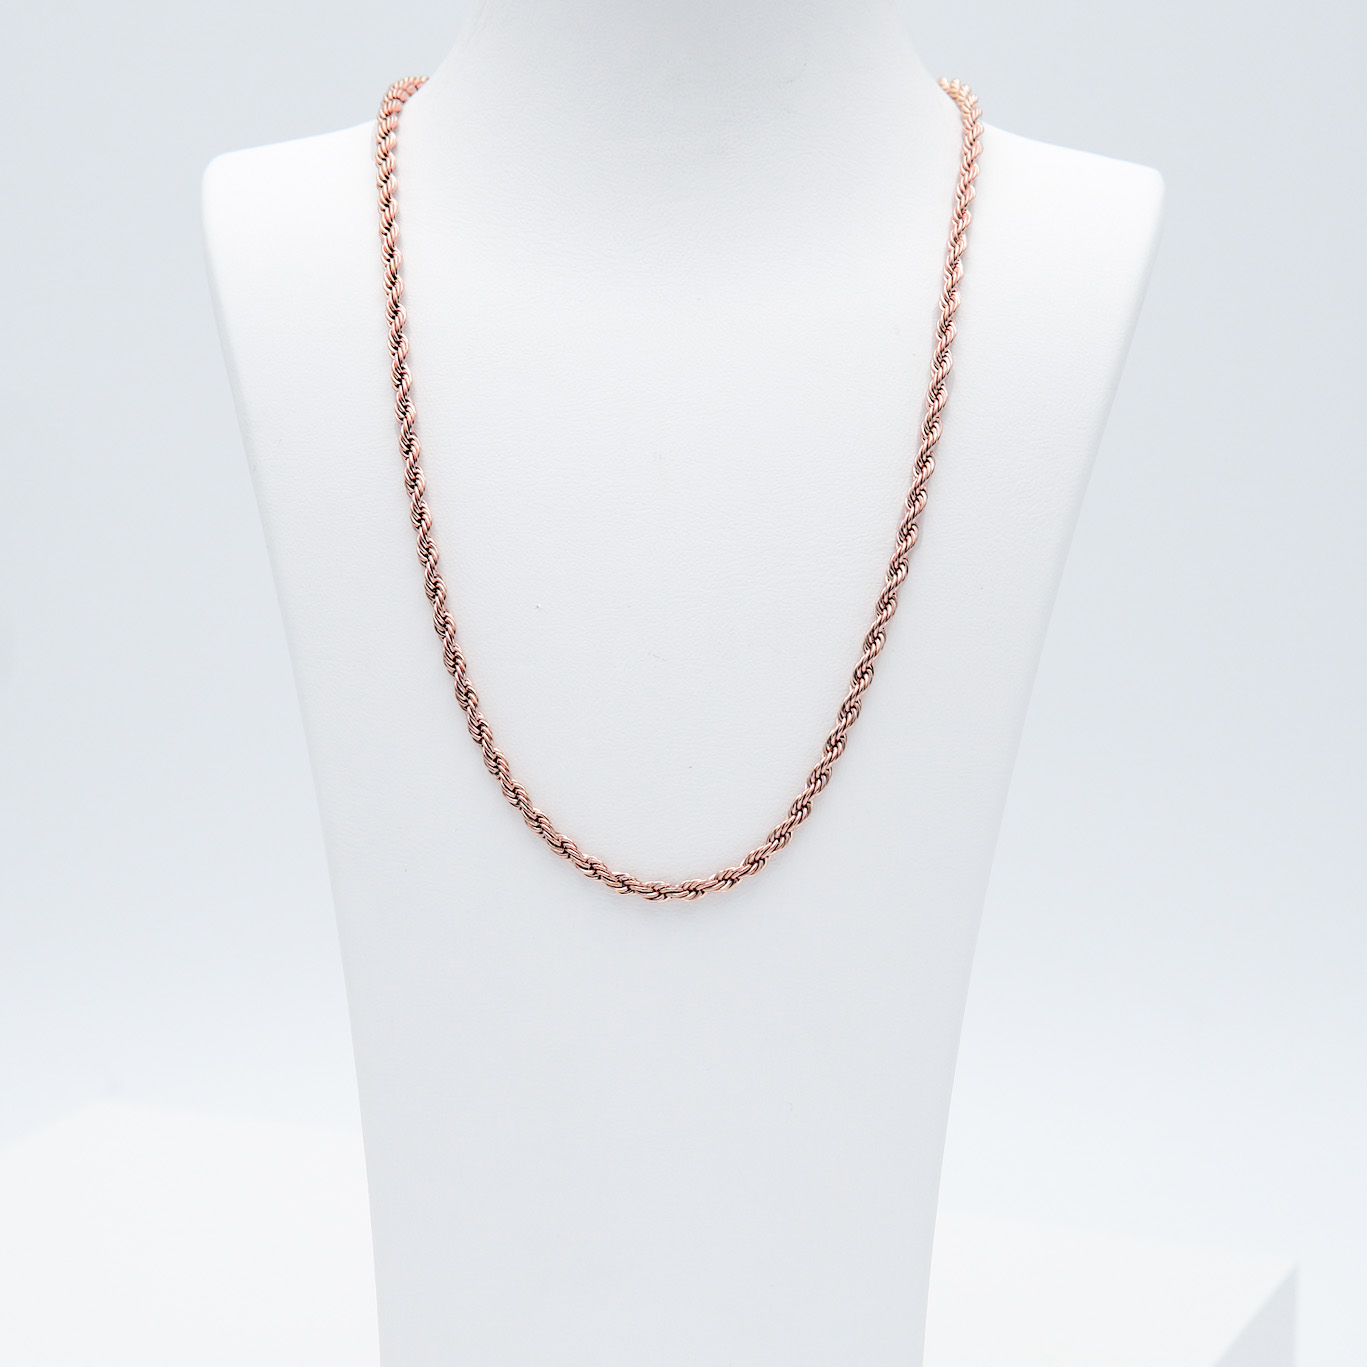 2- Stronger Together Necklace Rose Edition Halsband Modern and trendy Necklace and women jewelry and accessories from SWEVALI fashion Sweden